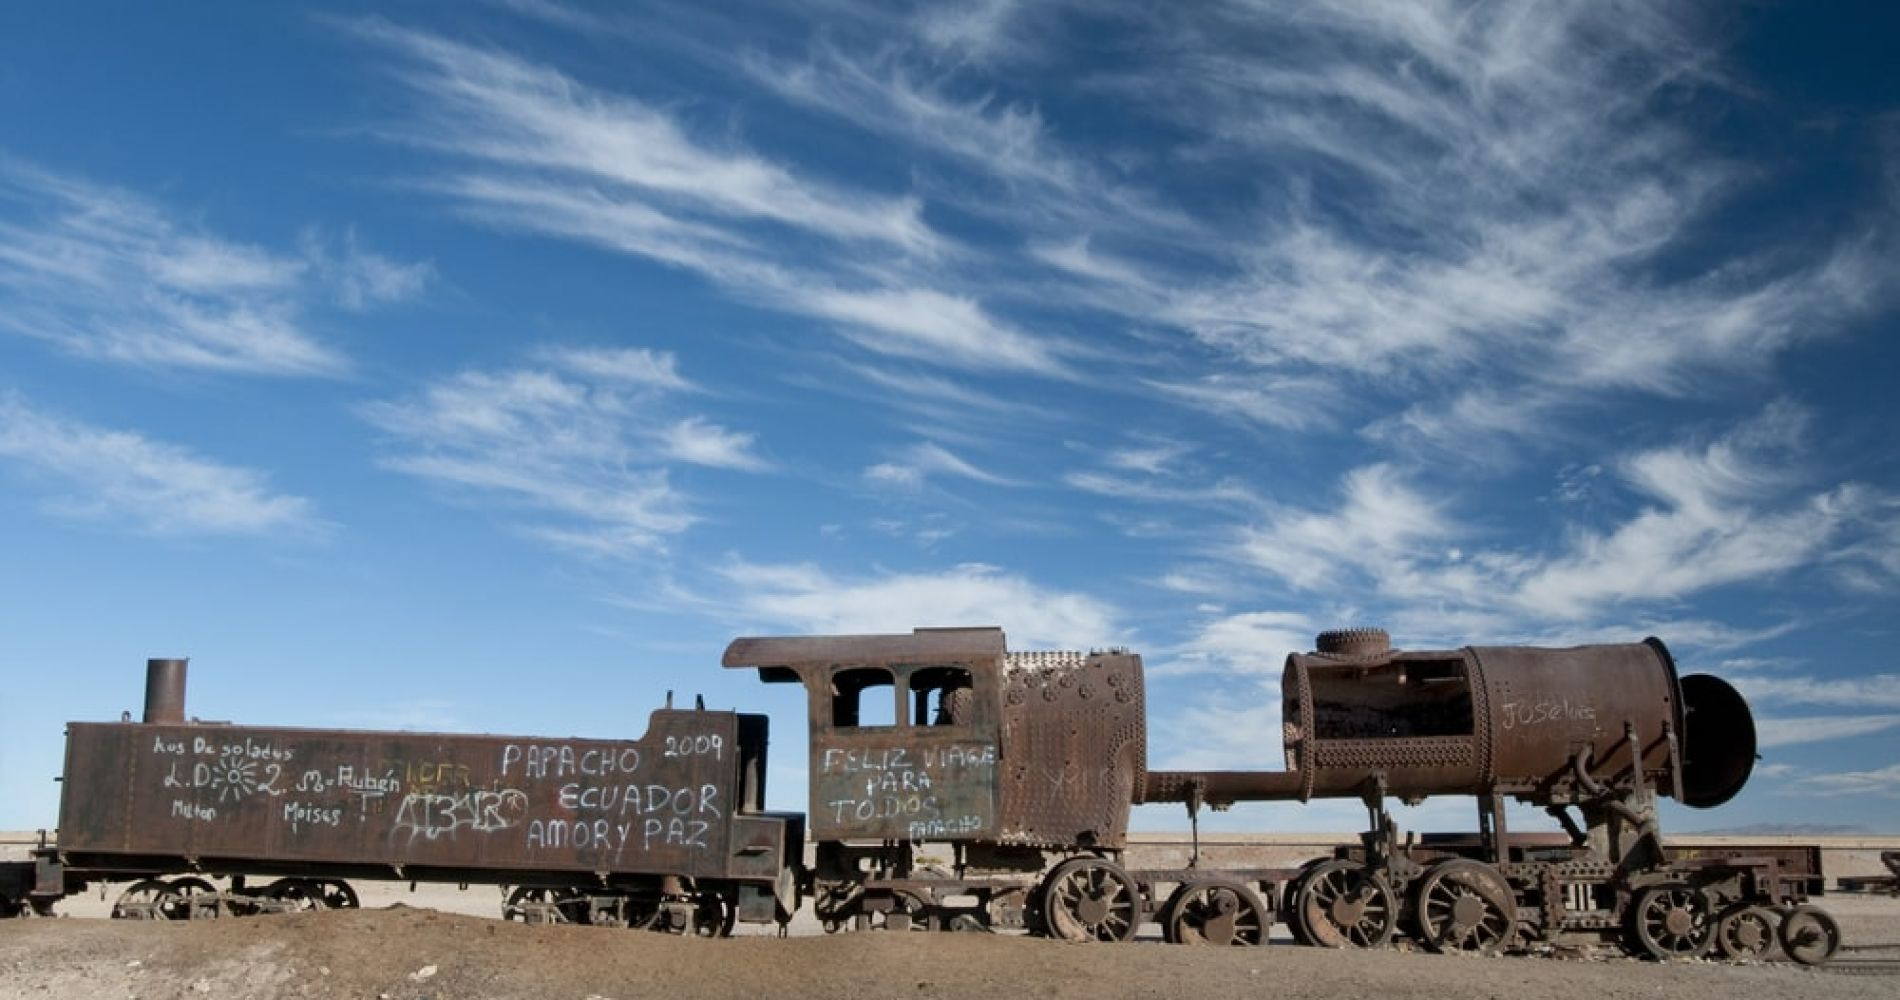 Visit Train Cemetary in Bolivia